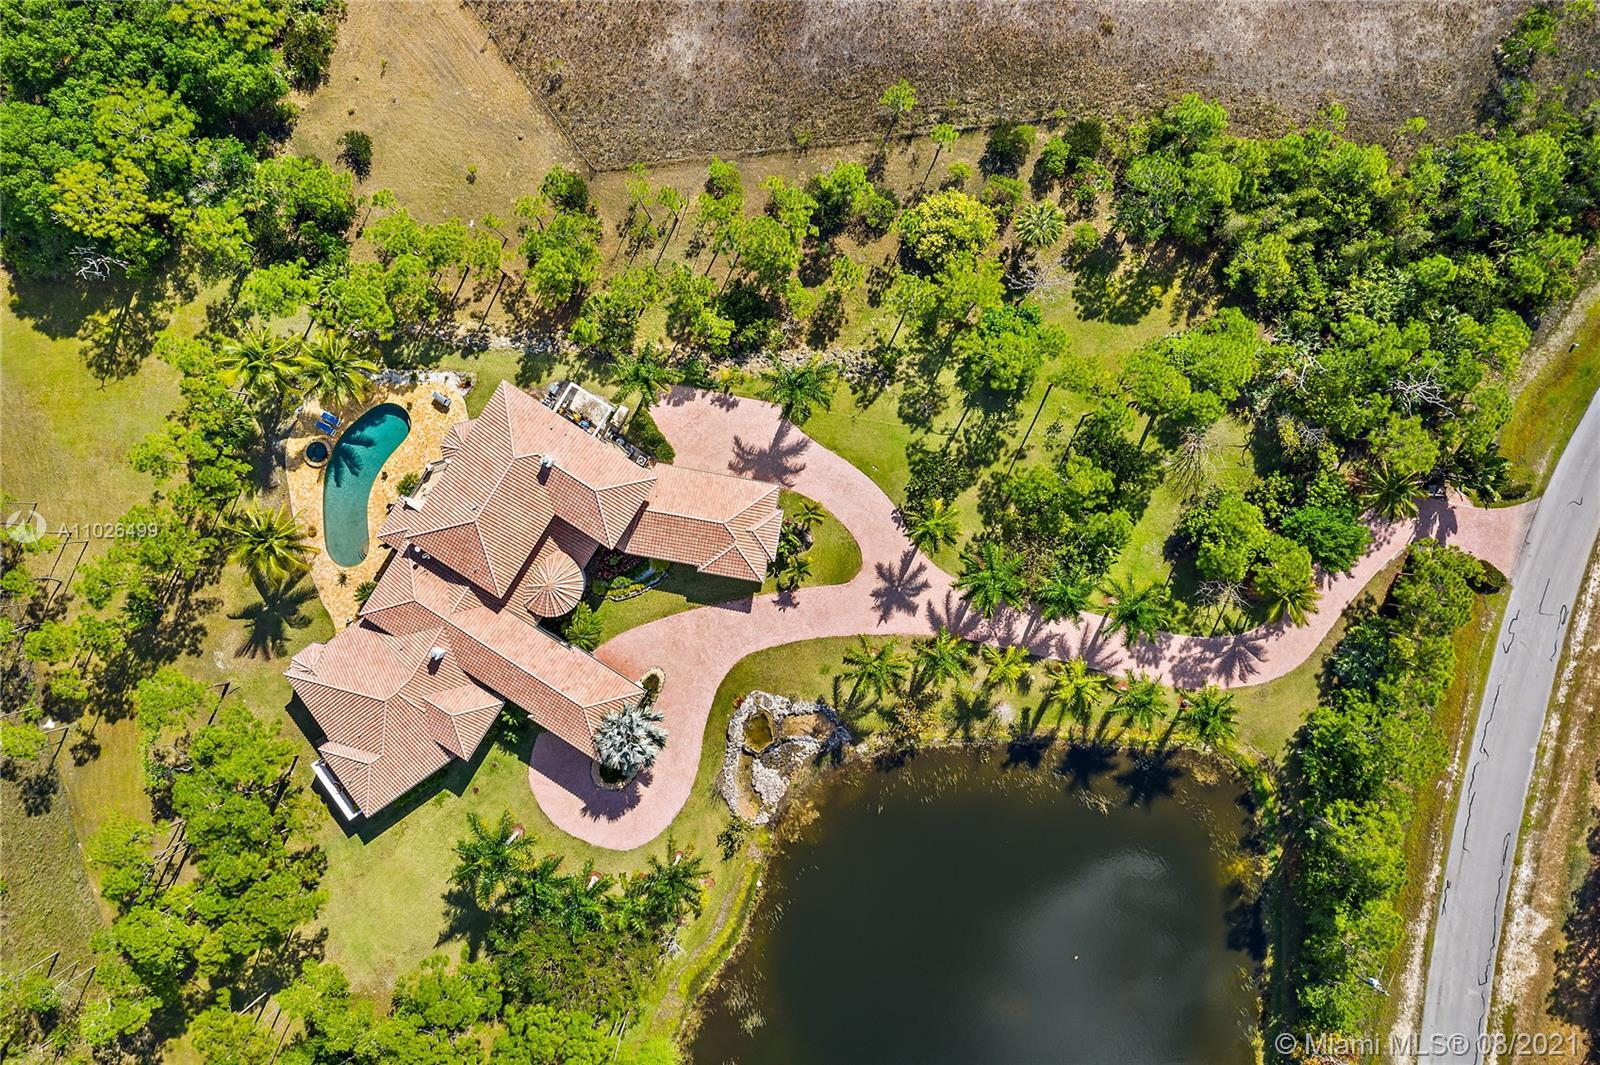 Peerless luxury 9500 sqft home, which sits on 22 acres of private estate lot at the Ranch Colony. Th